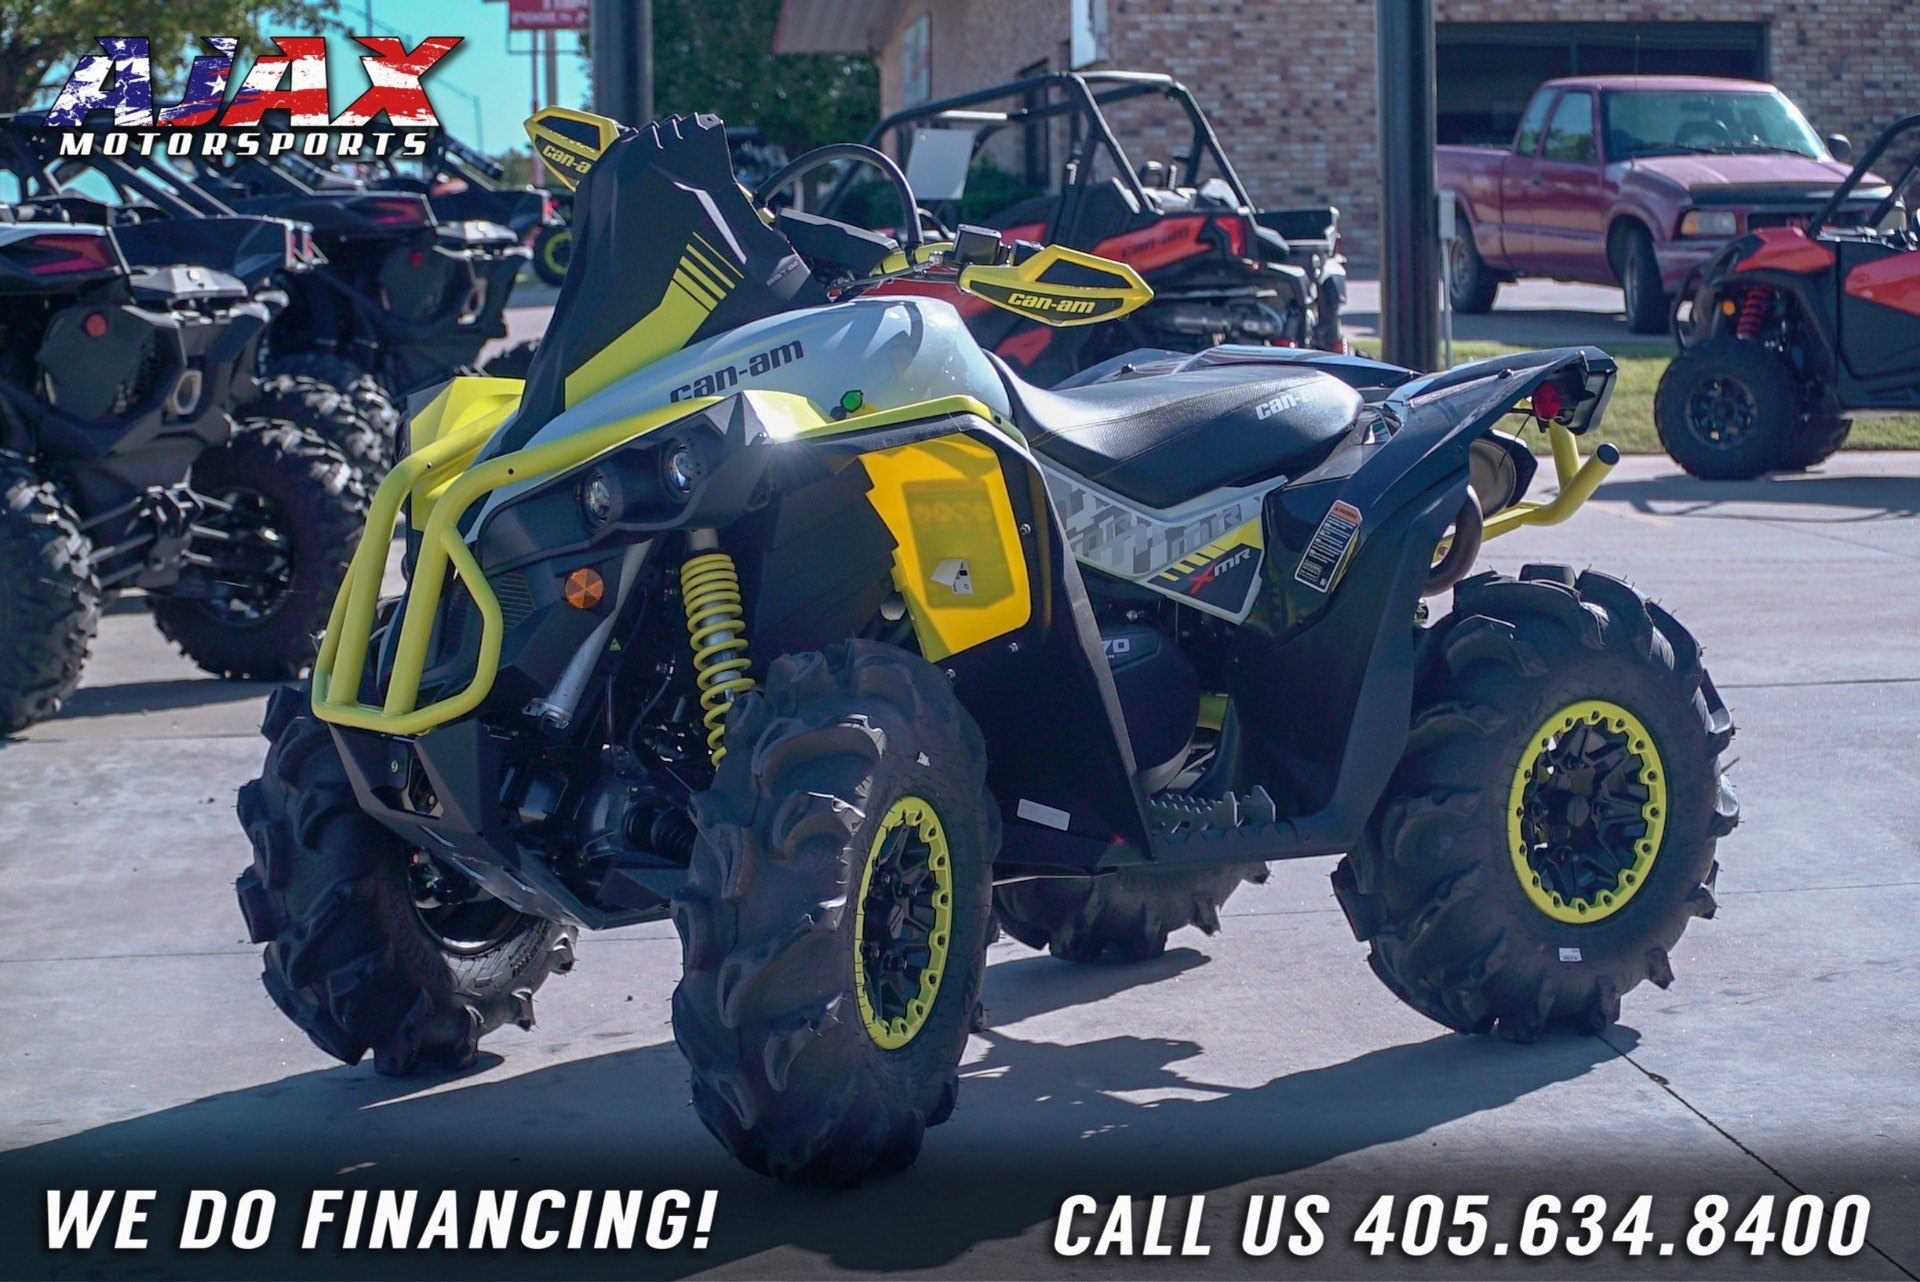 2020 Can-Am Renegade X MR 570 in Oklahoma City, Oklahoma - Photo 3